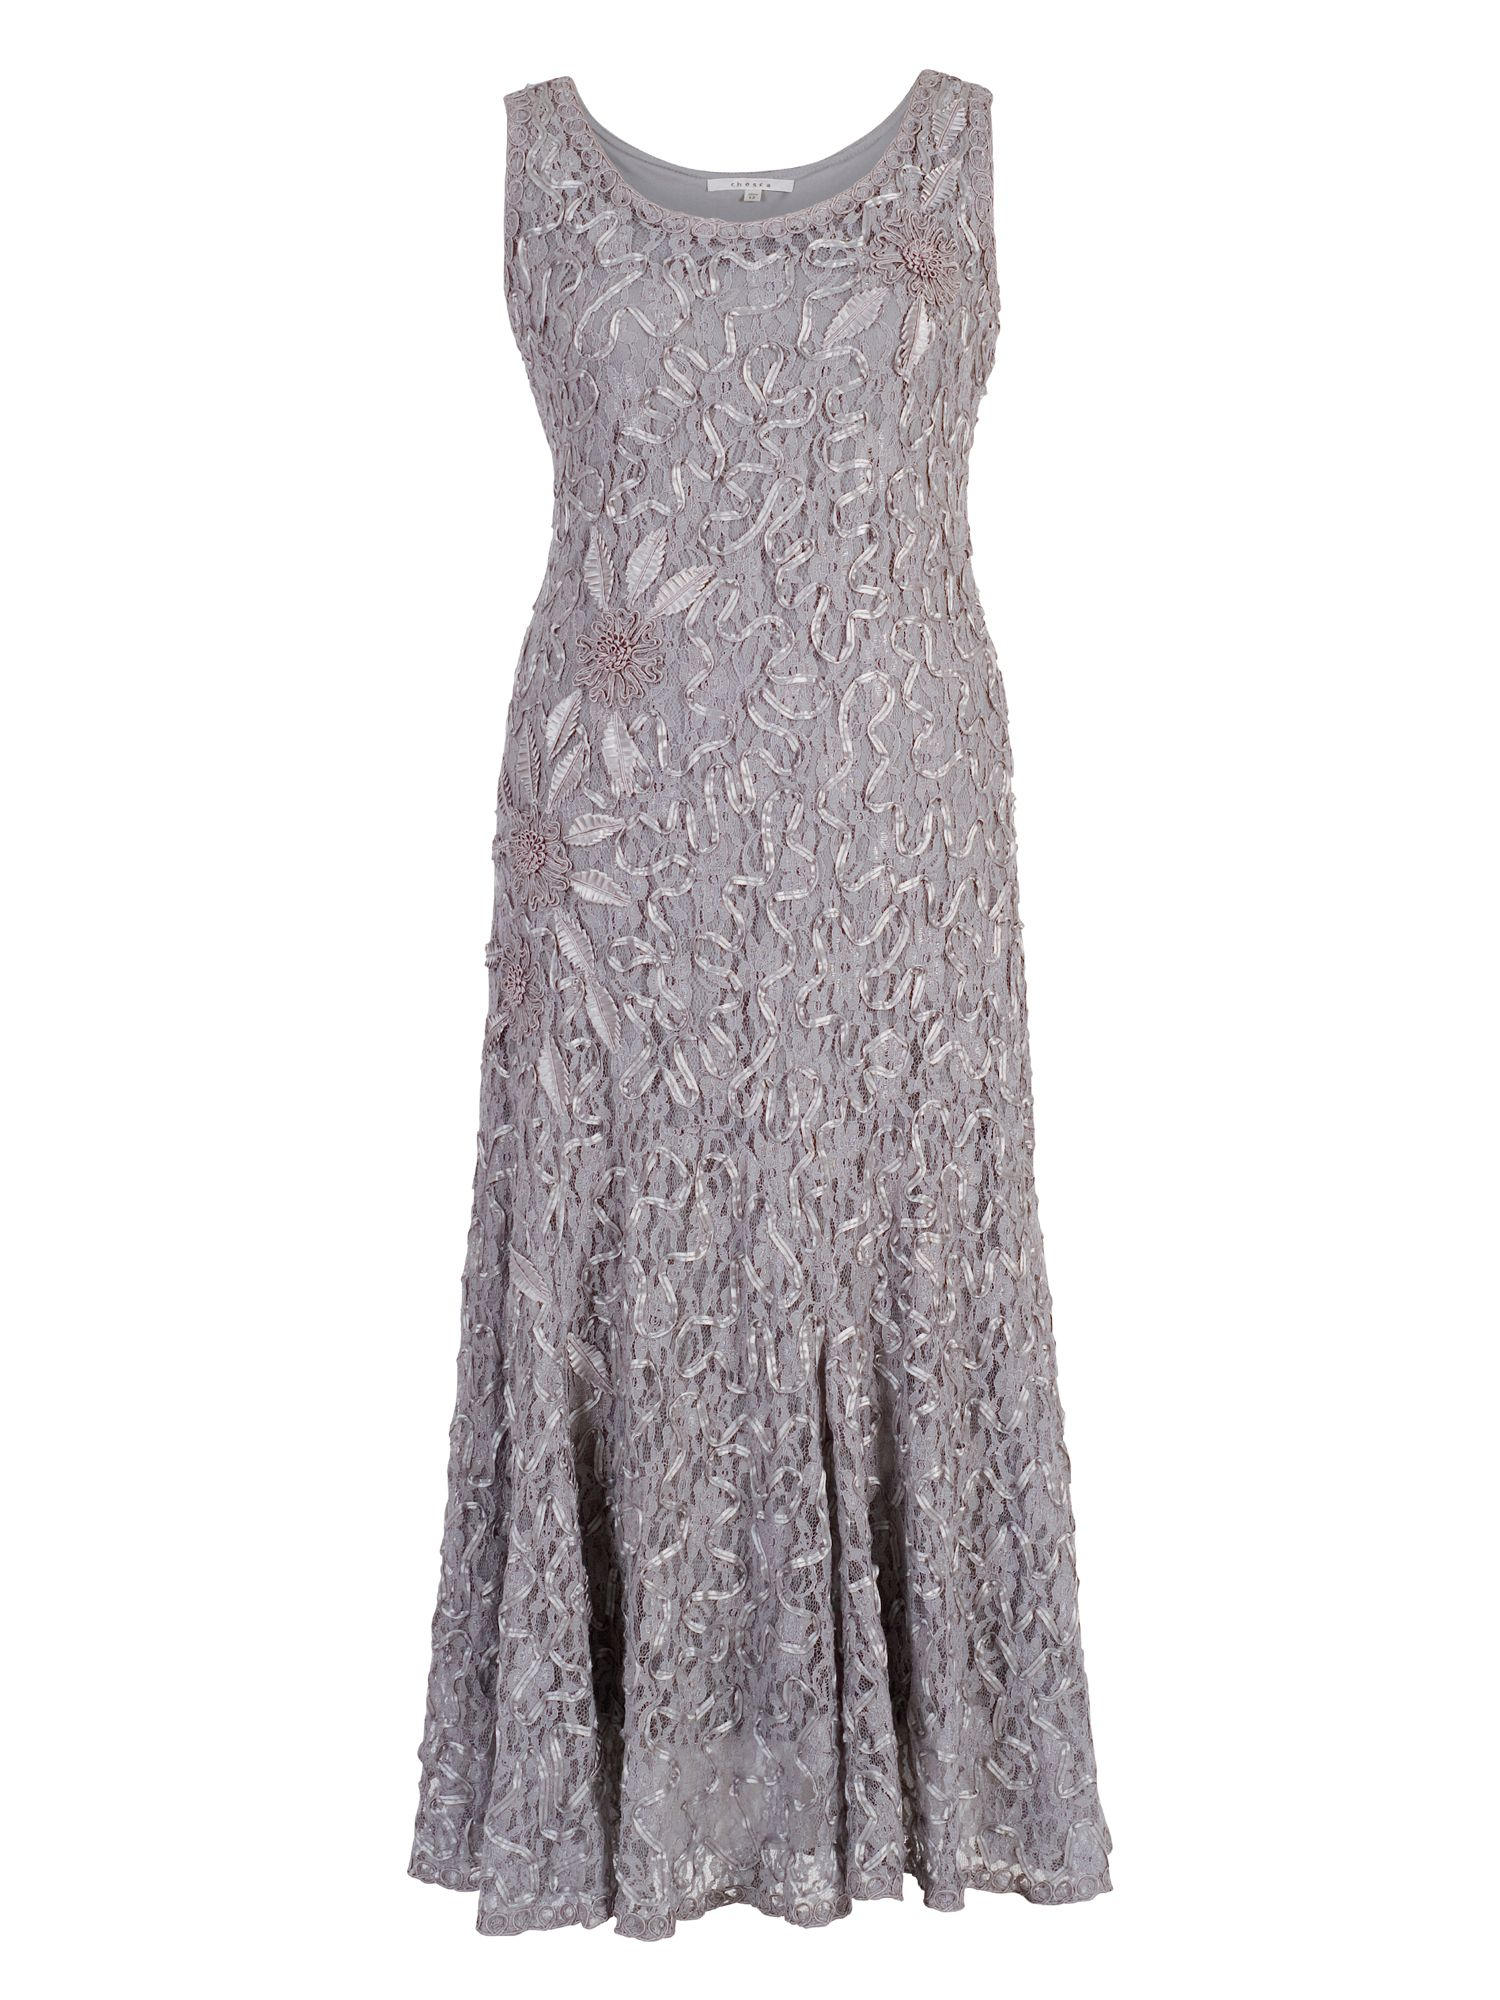 Chesca Lace Dress with Cornelli Trim, Grey